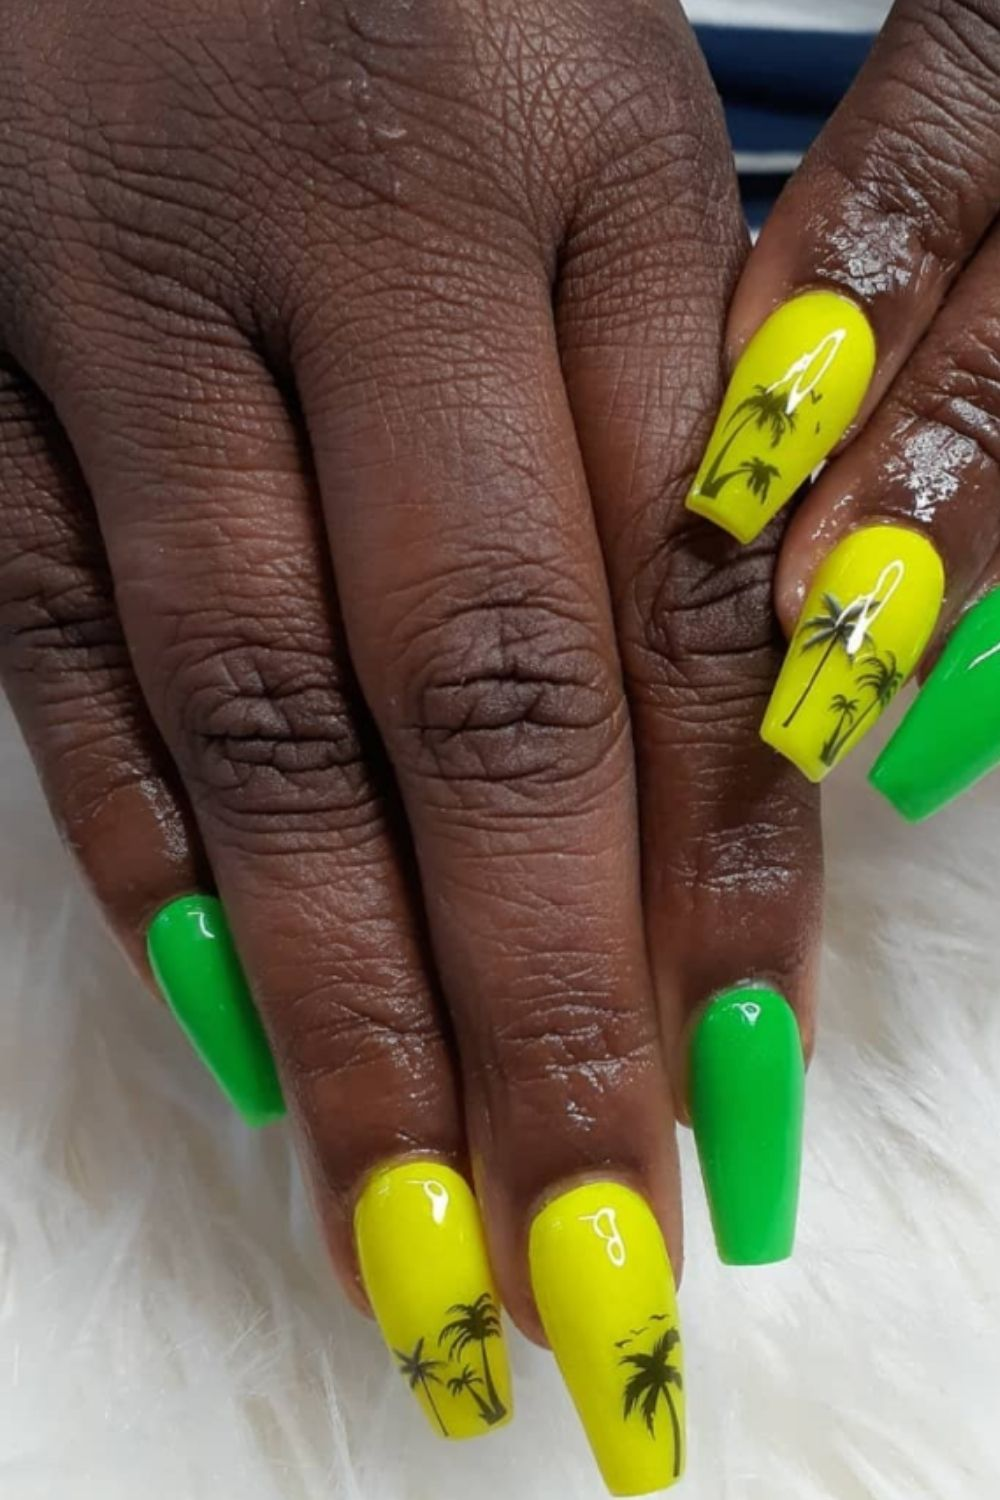 Yellow and green coffin nails designs with palm tree